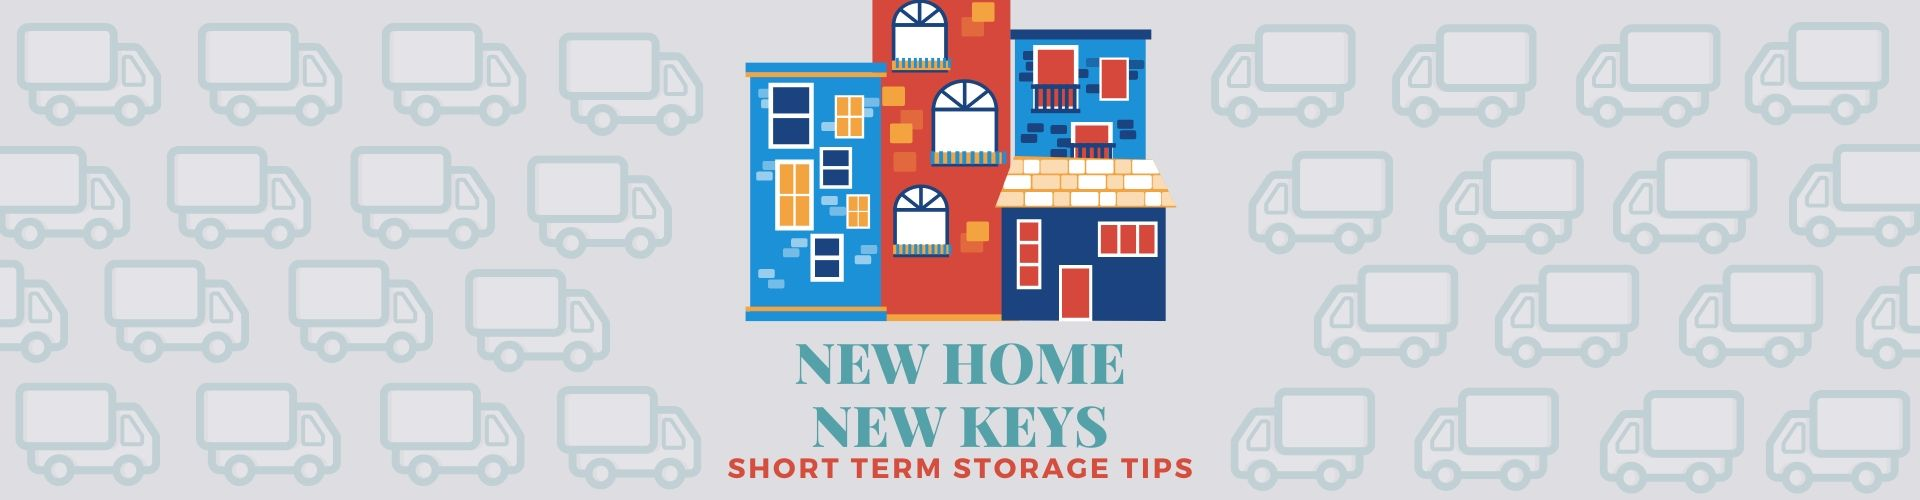 Temporary Storage Solutions With Bowman Plains Self Storage